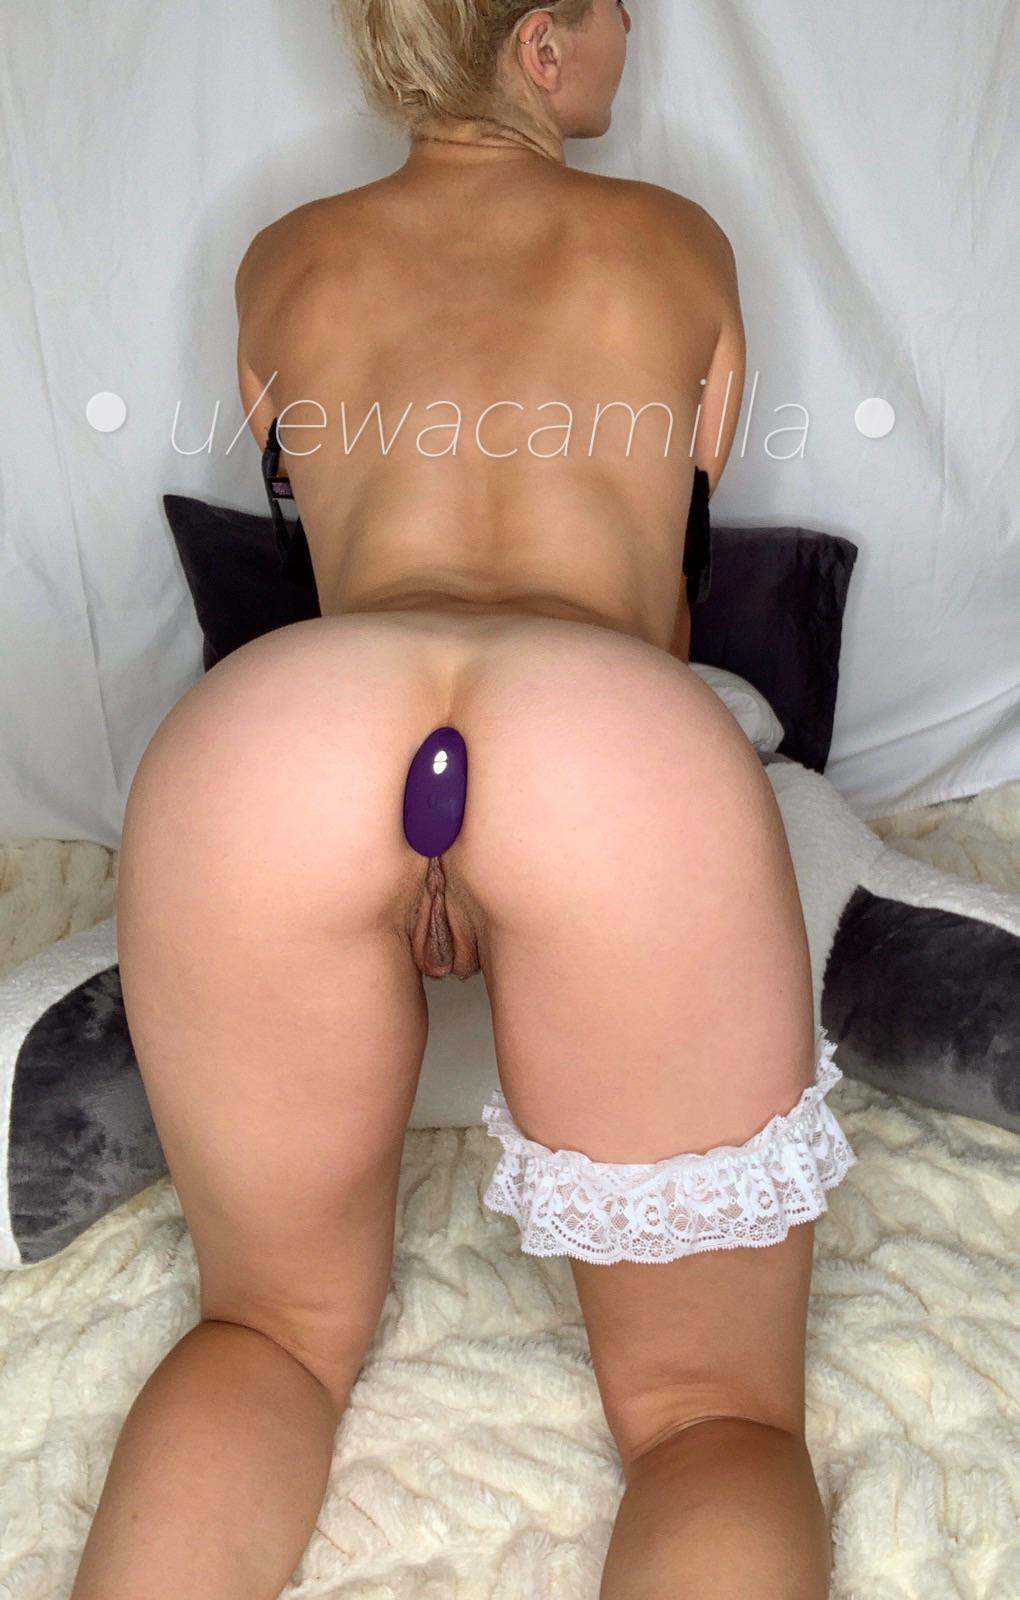 My Ass Isn't The Biggest But It's Firm, Round And Attached To A Super Horny Girl